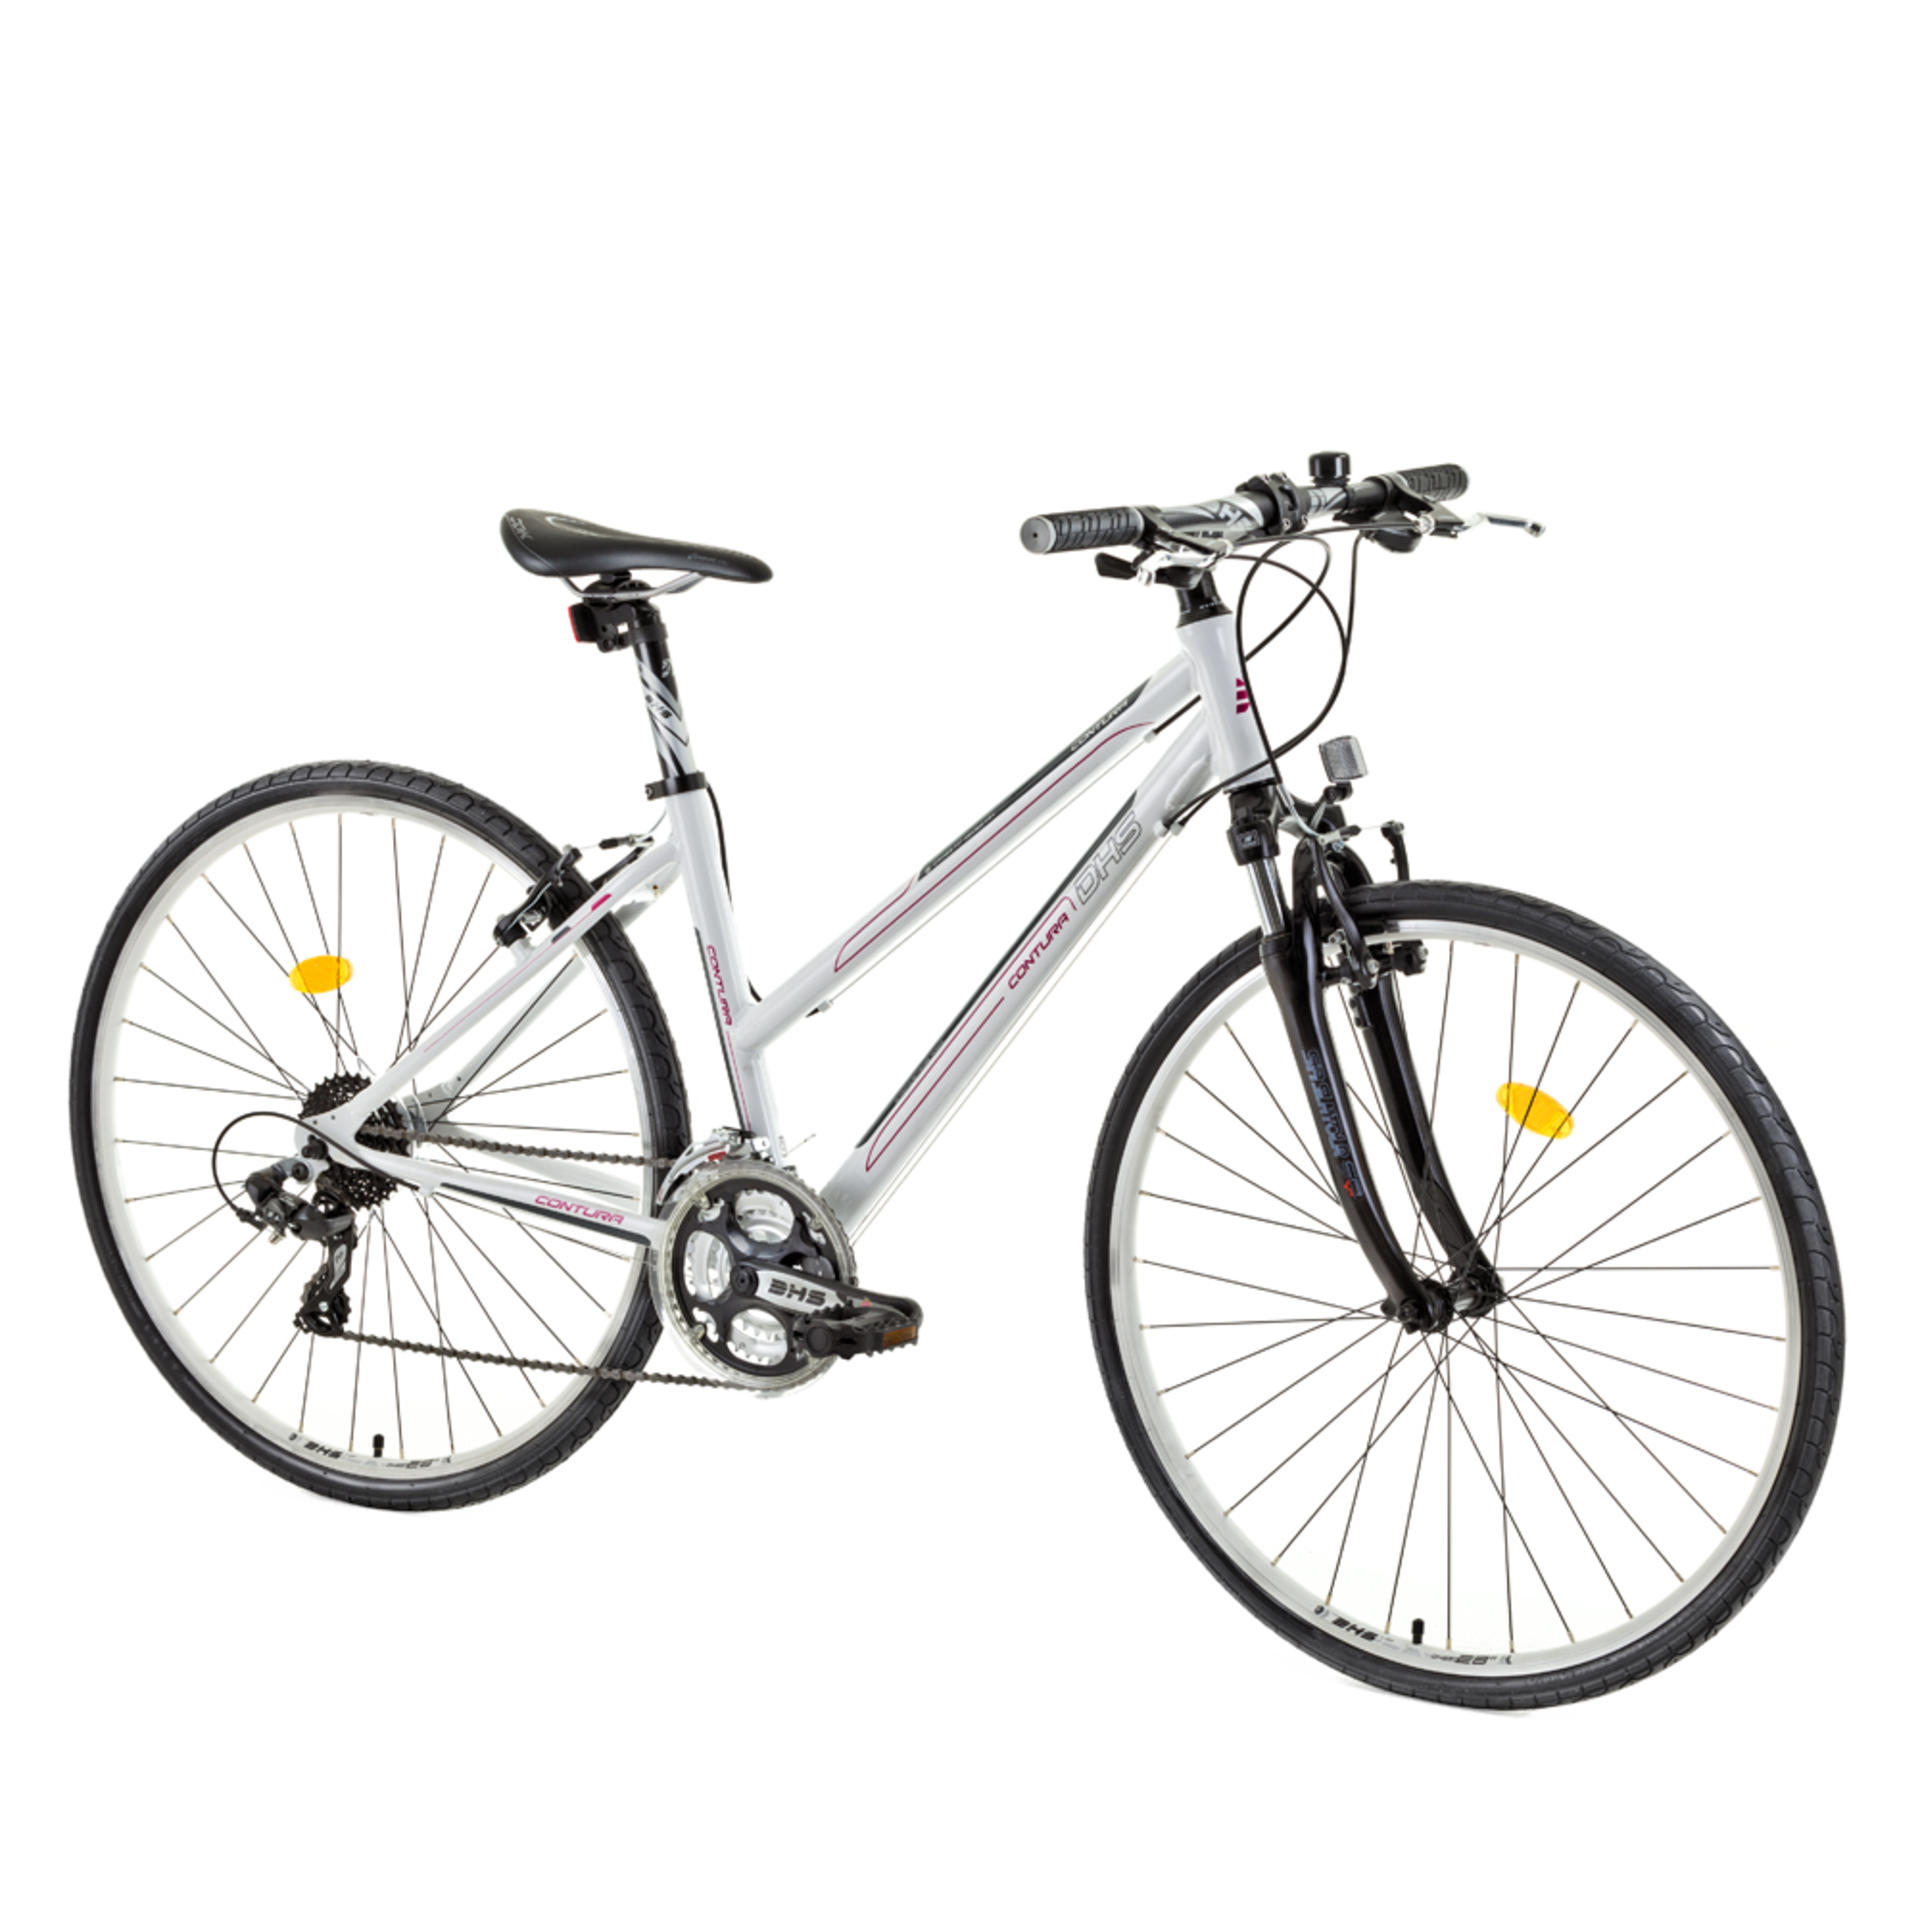 Bicicletta da cross da donna DHS 2866 White 440mm